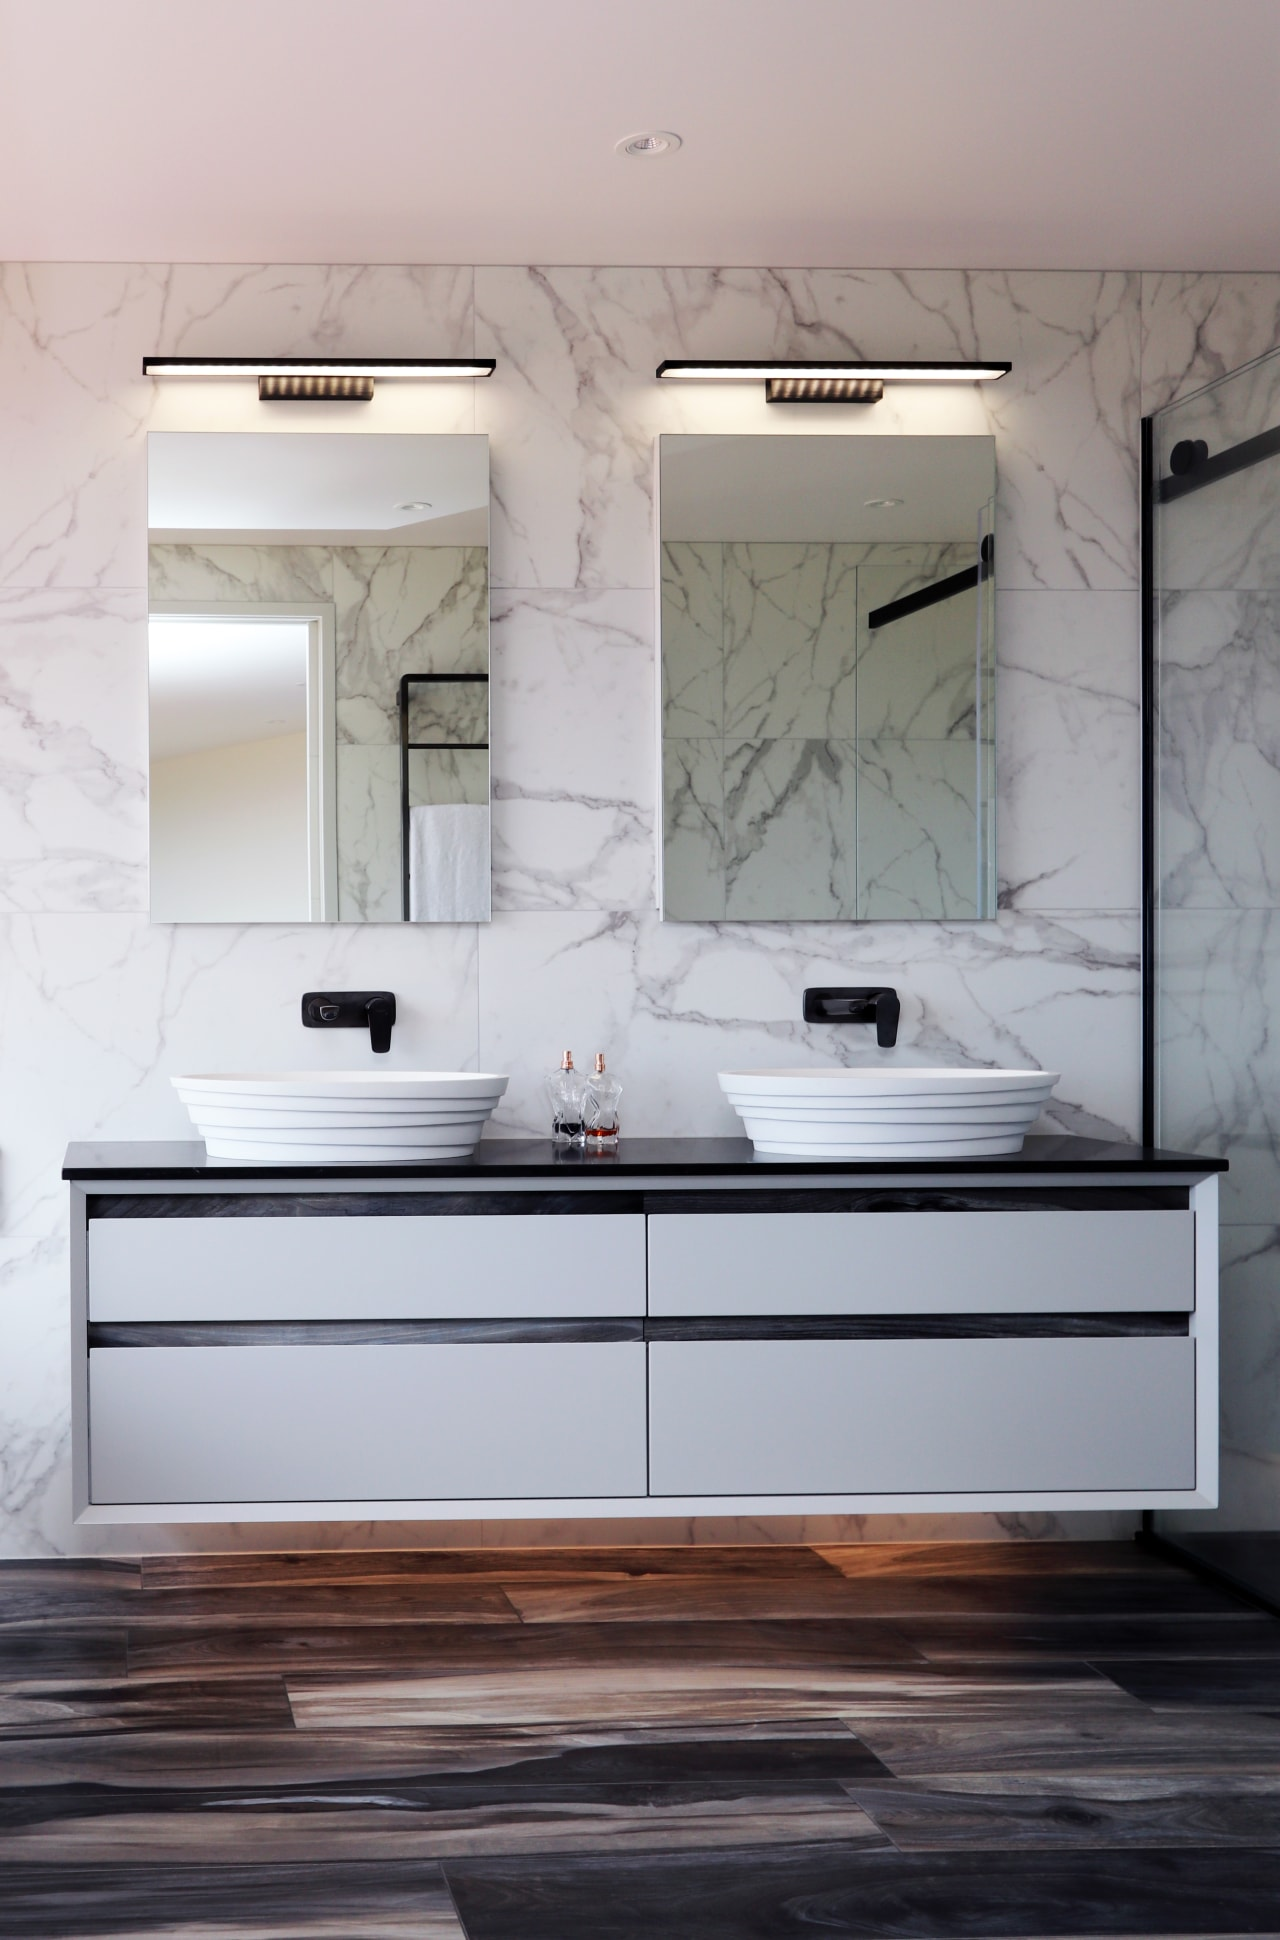 This custom his-and-hers vanity, supplied locally by Elite architecture, bathroom, bathroom accessory, building, cabinetry, ceiling, countertop, floor, flooring, furniture, home, house, interior design, material property, plumbing fixture, property, room, sink, tap, tile, wall, white, gray